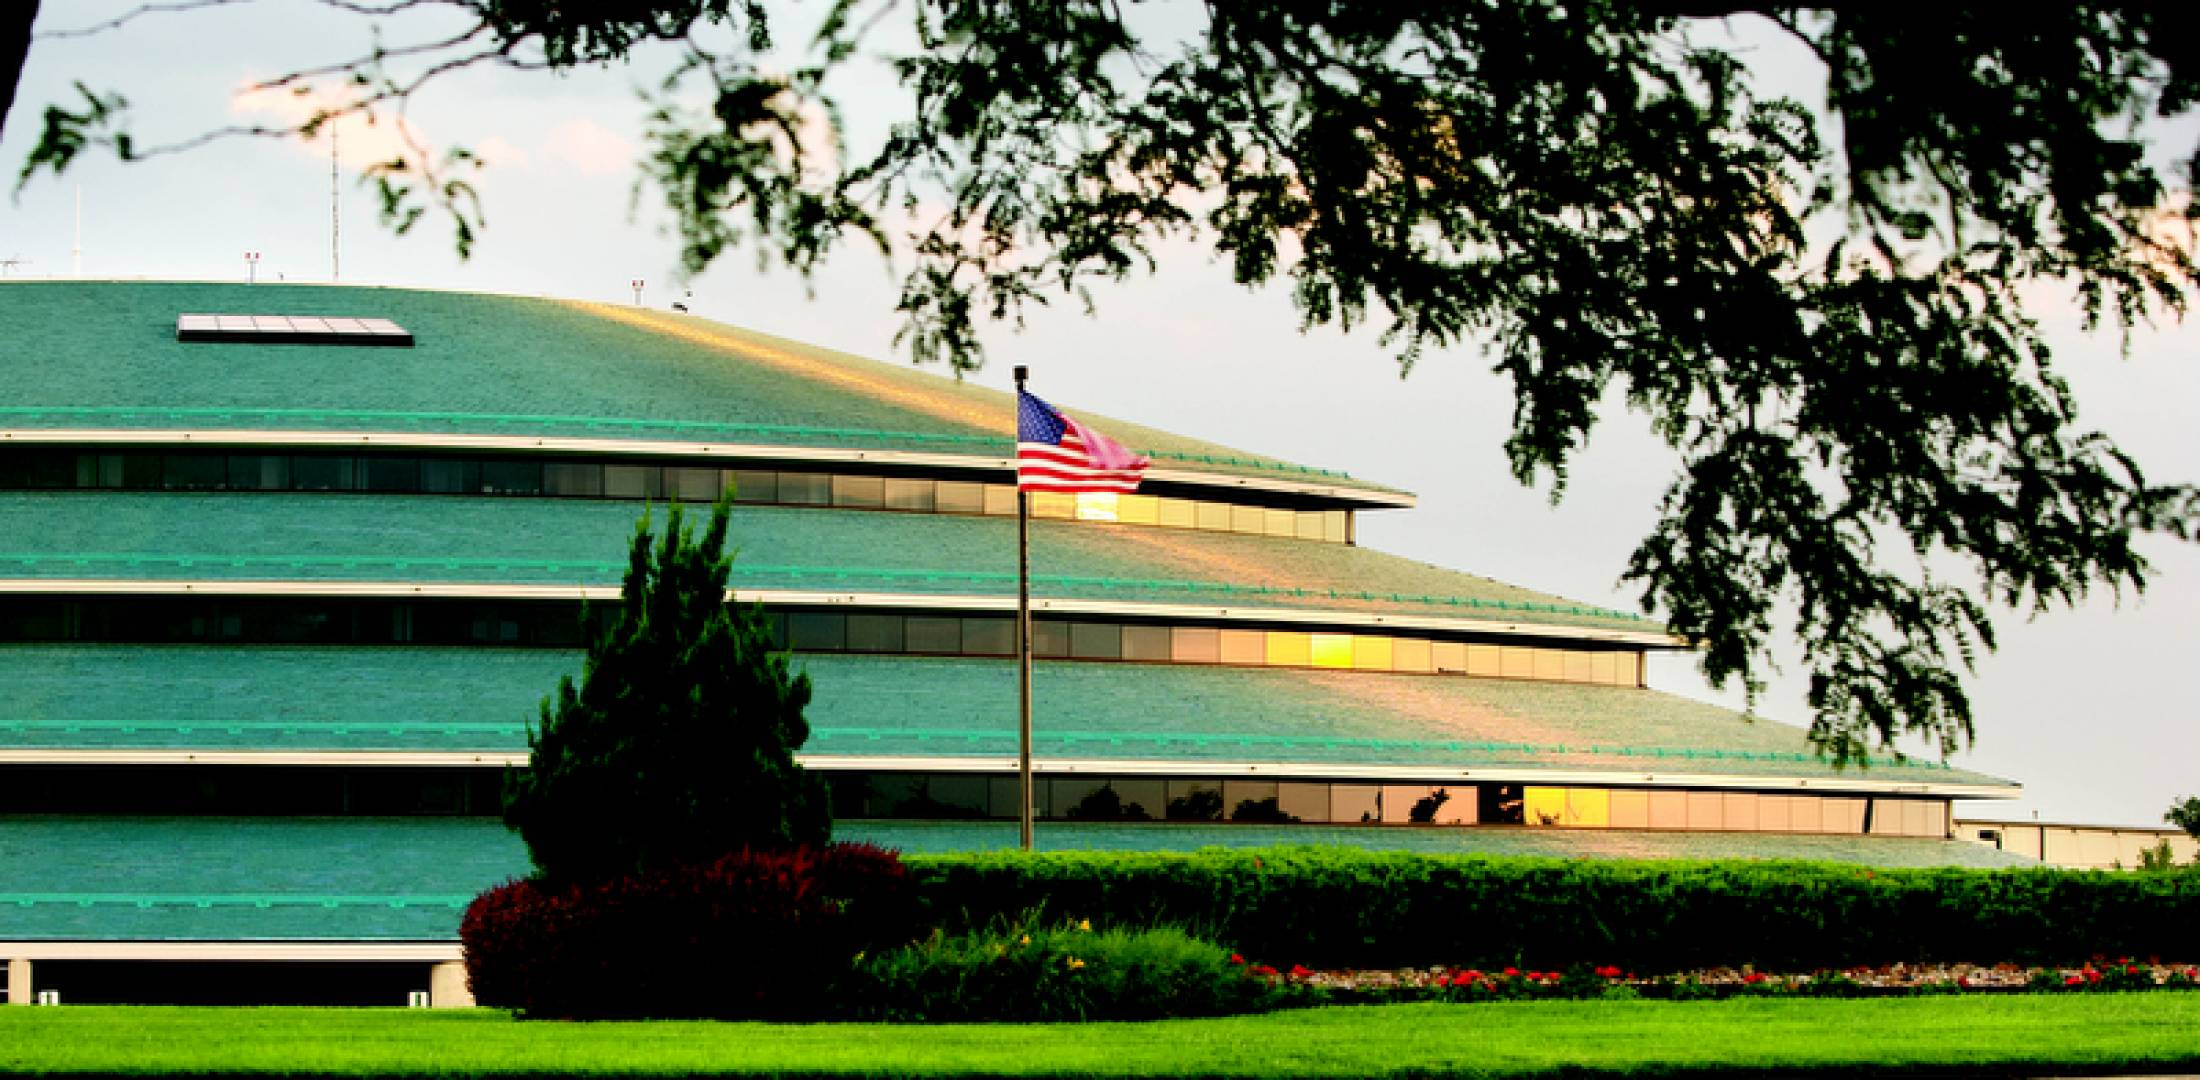 Hawker Beechcraft's headquarters in Wichita, Kansas.